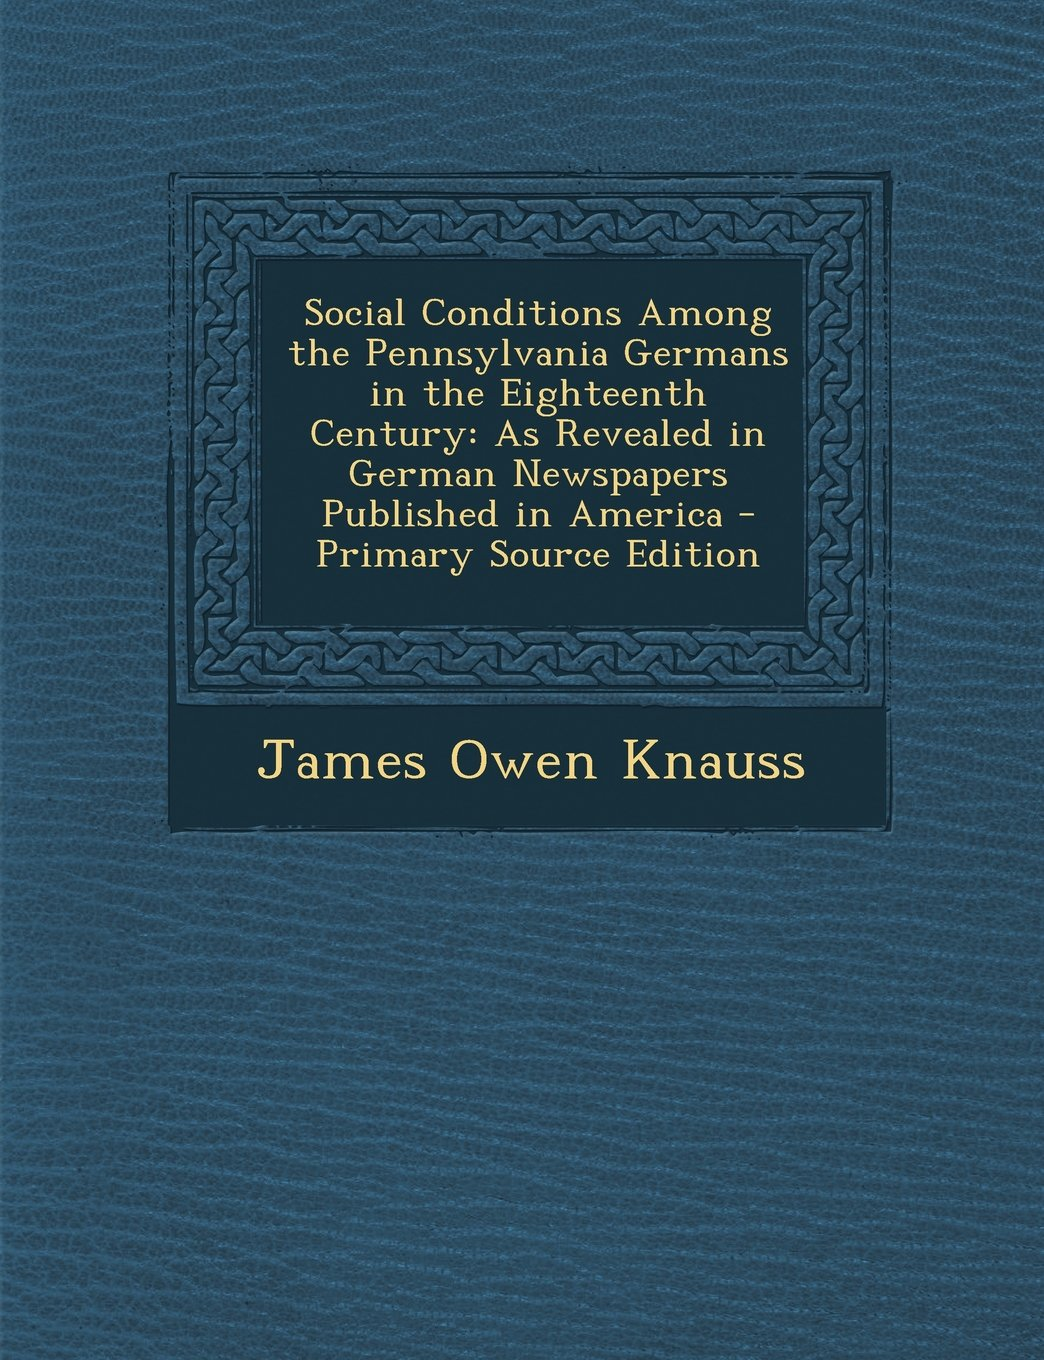 Social Conditions Among the Pennsylvania Germans in the Eighteenth Century: As Revealed in German Newspapers Published in America - Primary Source EDI pdf